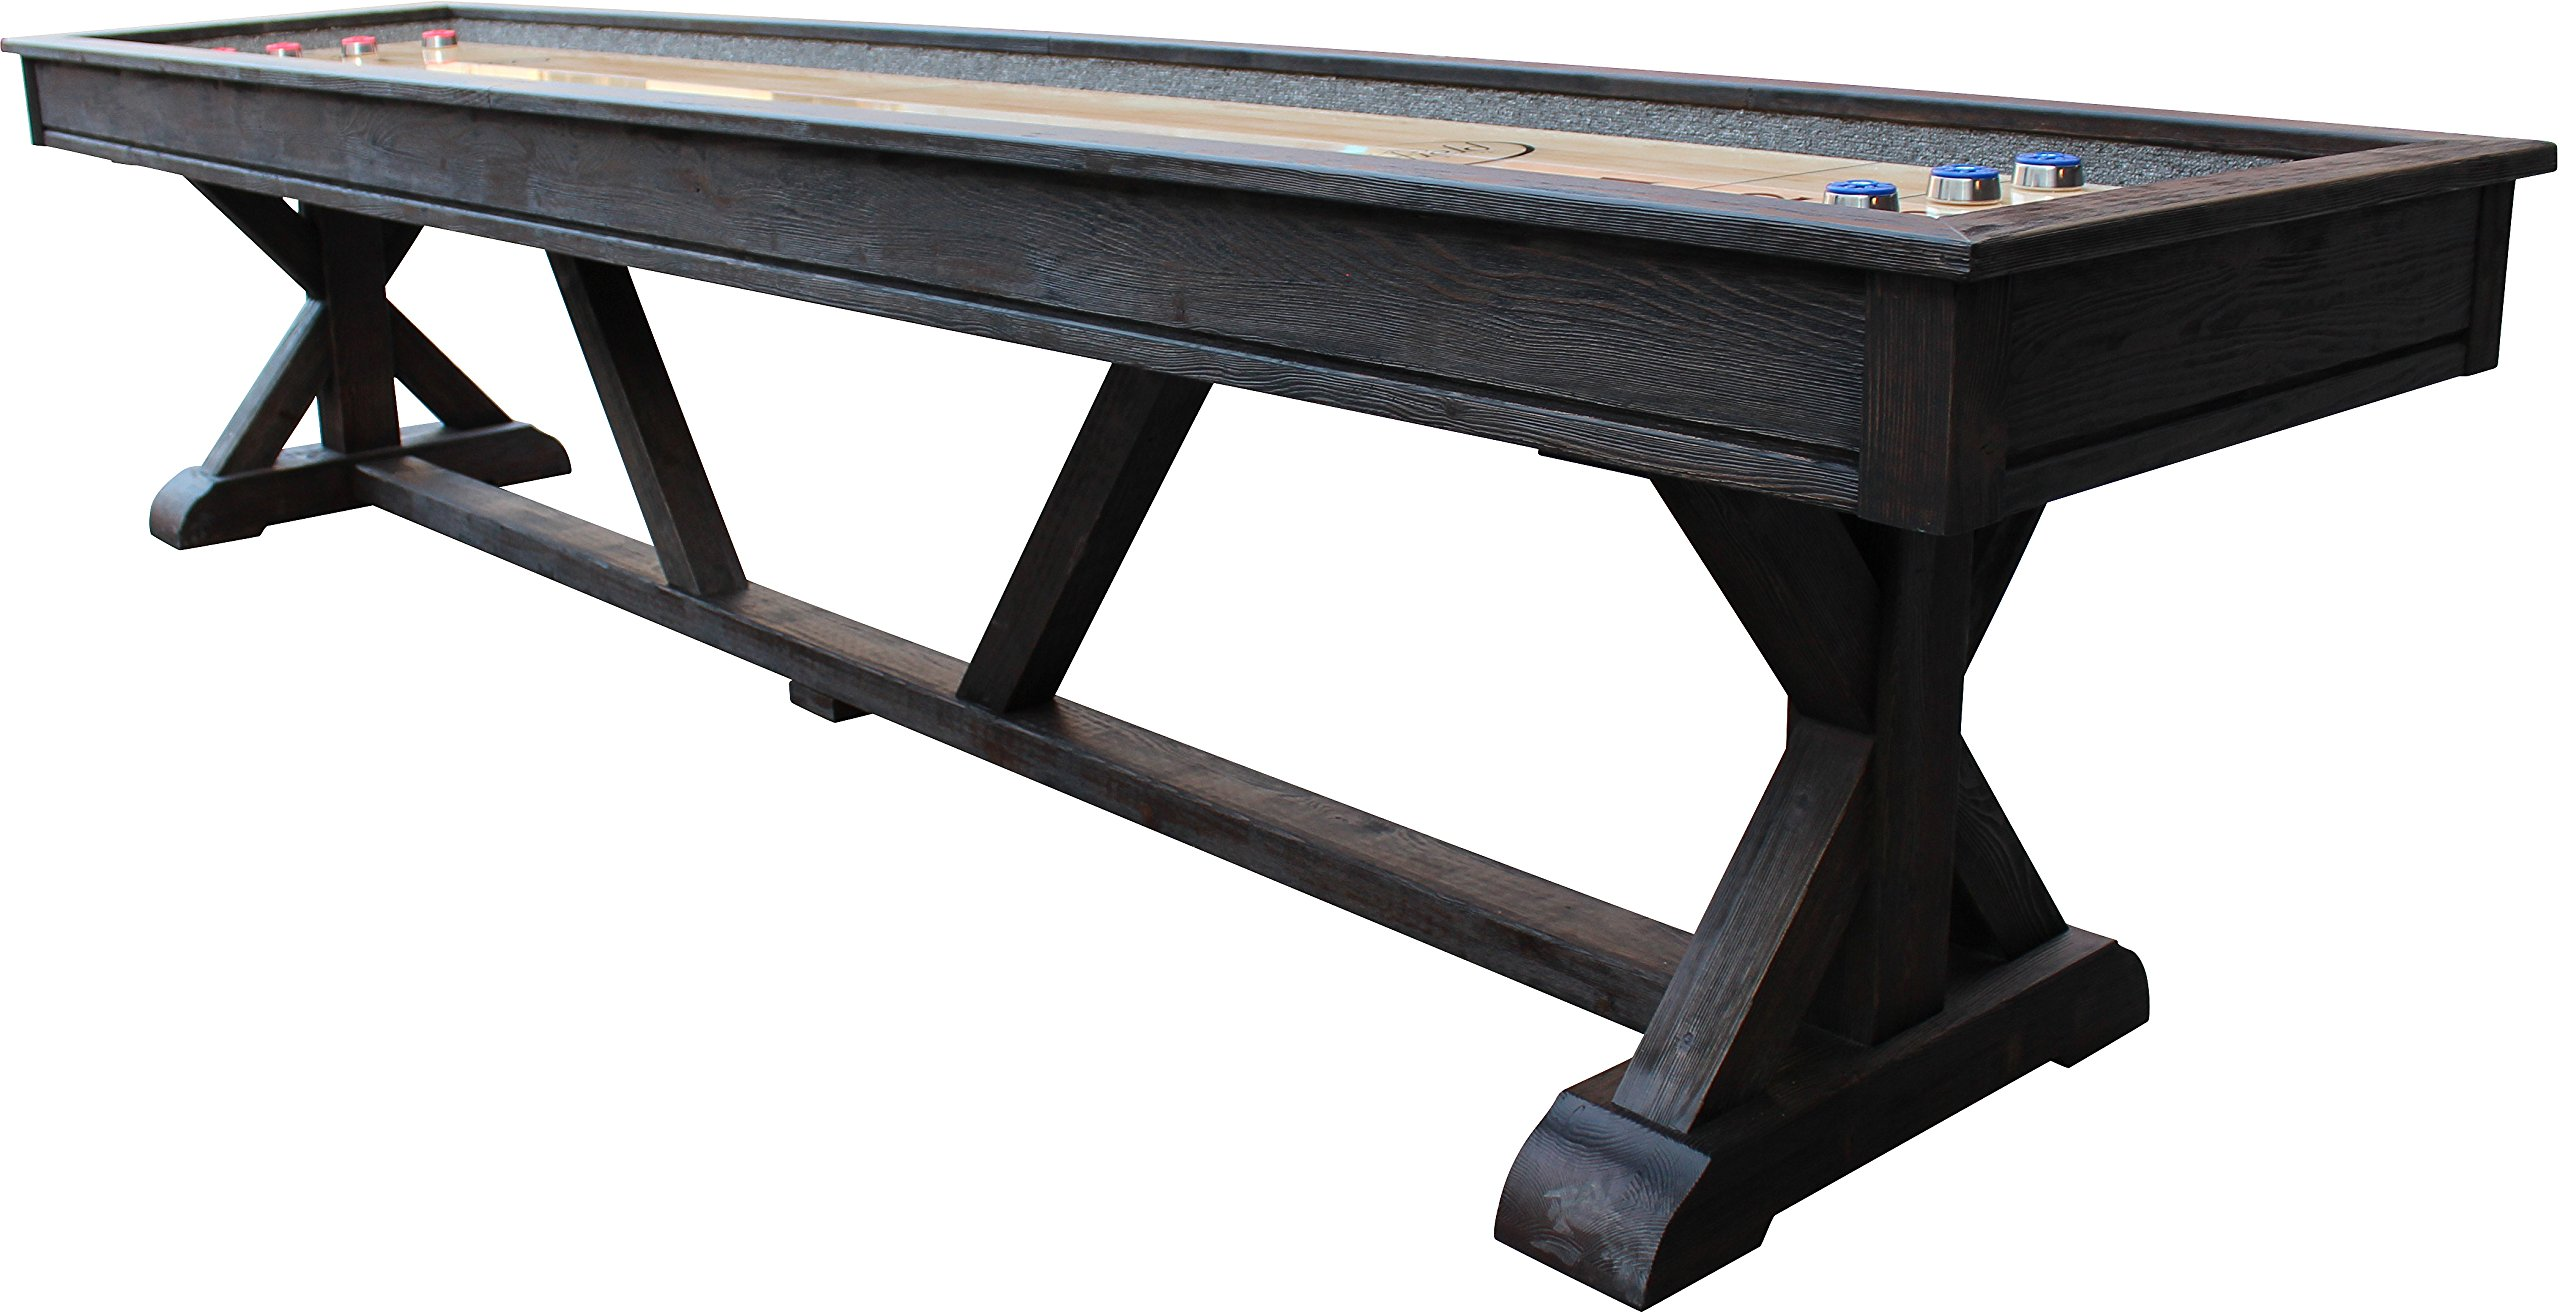 Playcraft Brazos River 12' Weathered Black Pro-Style Shuffleboard Table by Playcraft